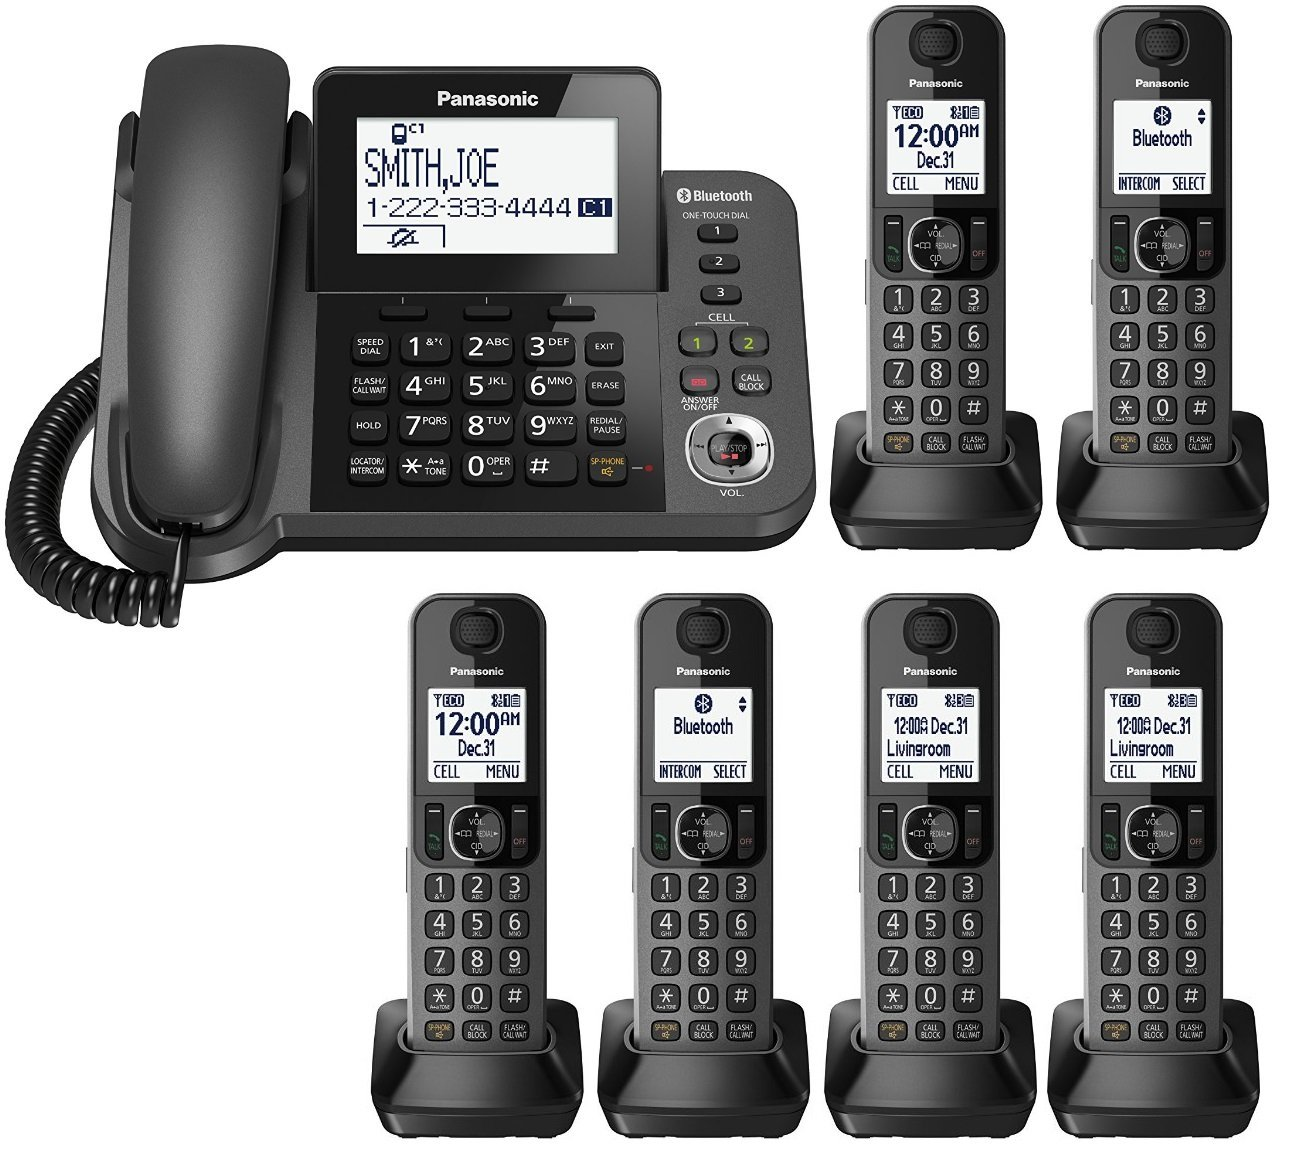 Panasonic KX-TGF383M plus three KX-TGFA30M handsets DECT 6.0 Plus Corded / Cordless 6-Handset Landline Telephone System (KX-TGF383M+3, KX-TGF382M+4, KX-TGF380M+5) (Certified Refurbished)